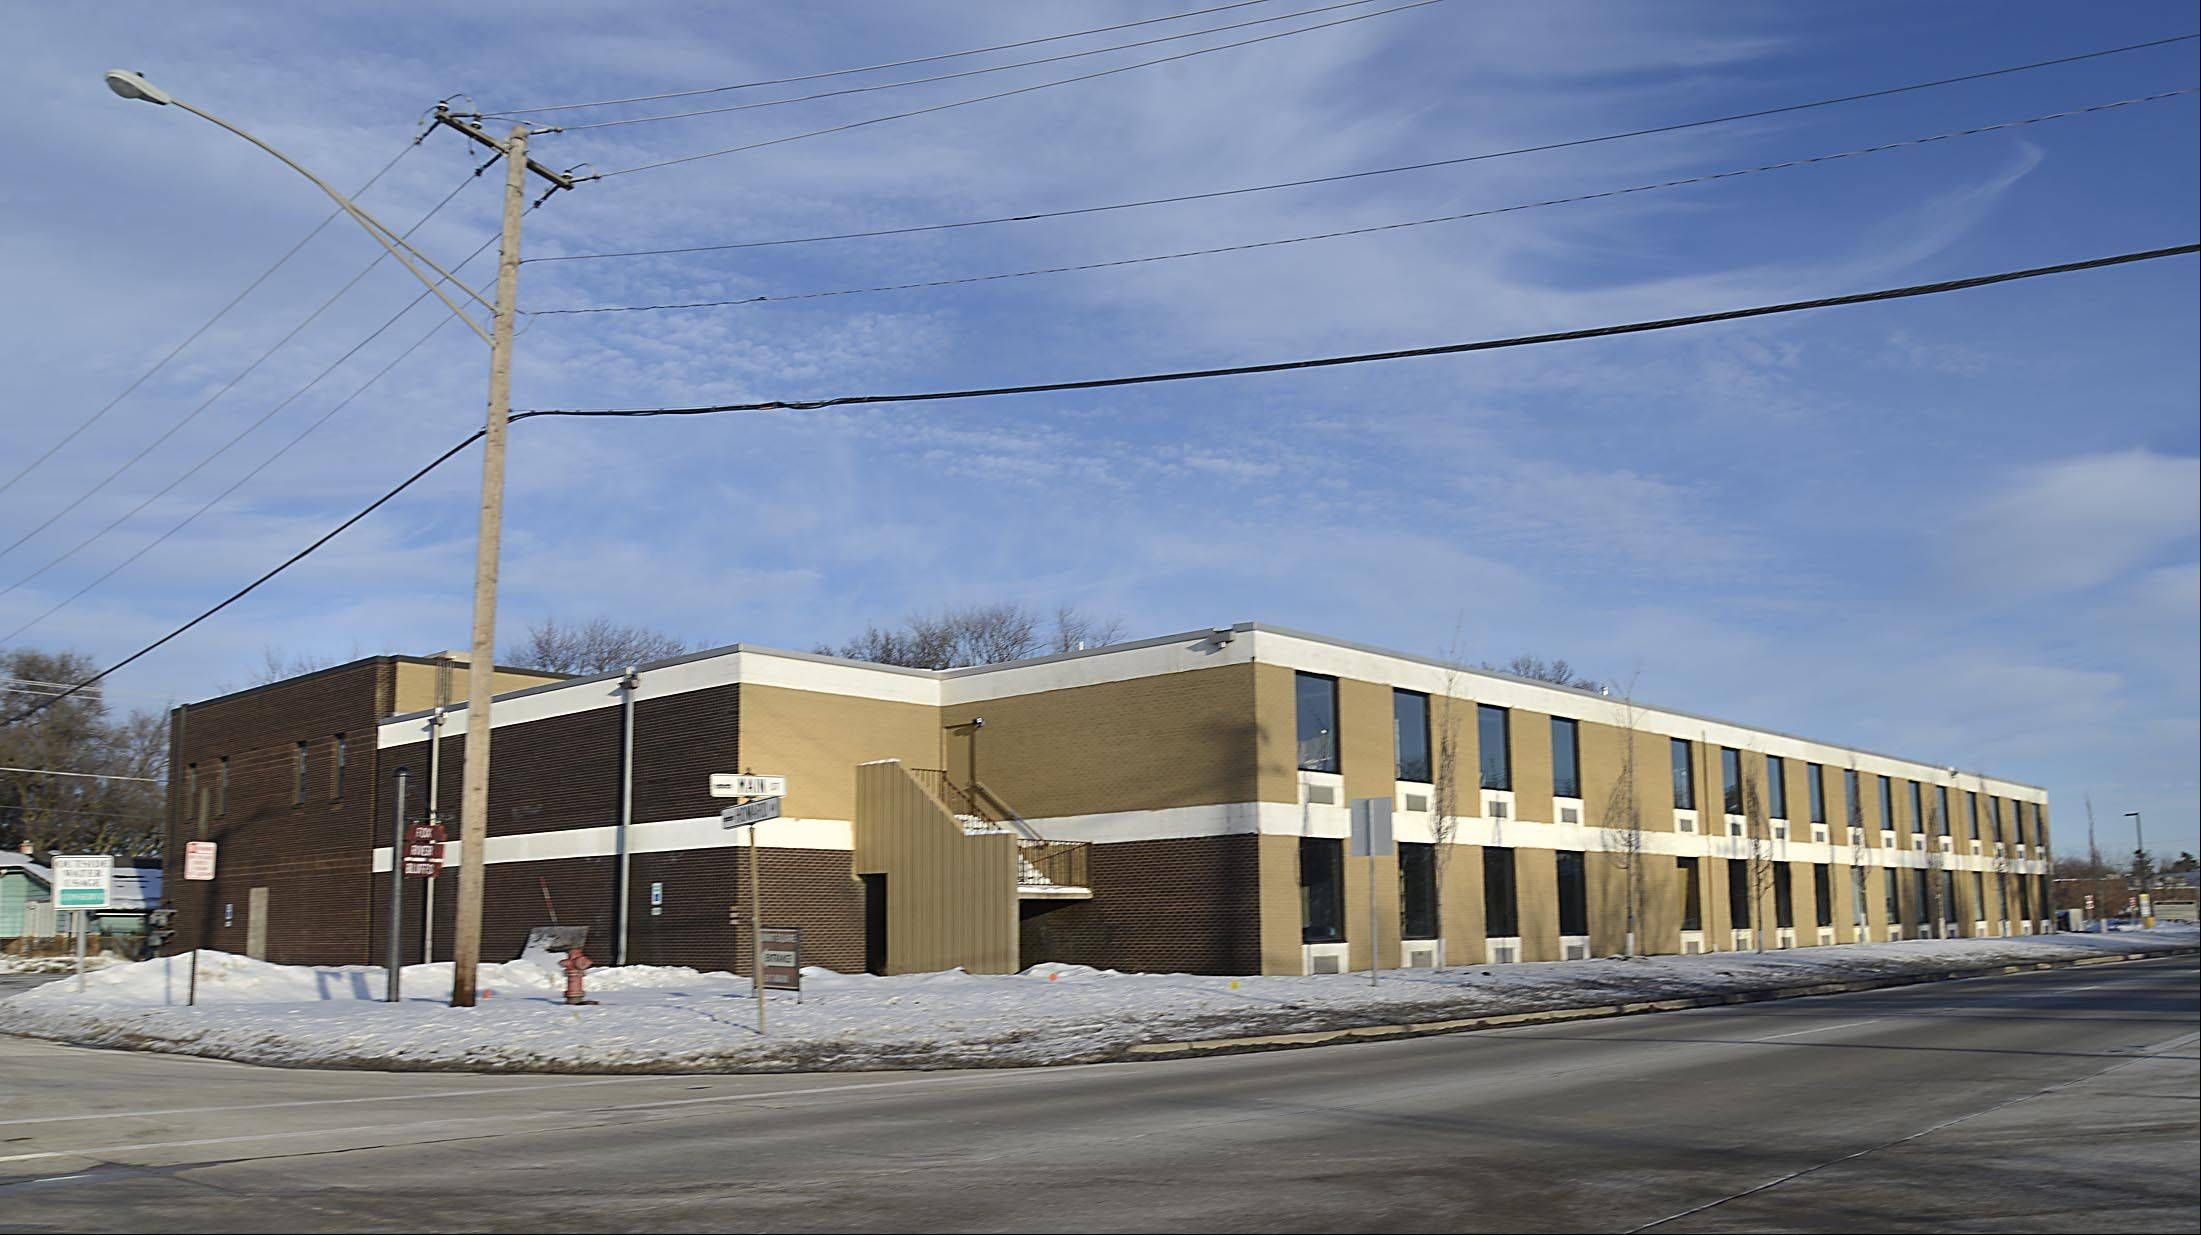 East Dundee approved a redevelopment agreement for the old Summit School on Main Street, which is now owned by Tom Roeser, who has converted the insides into office spaces.